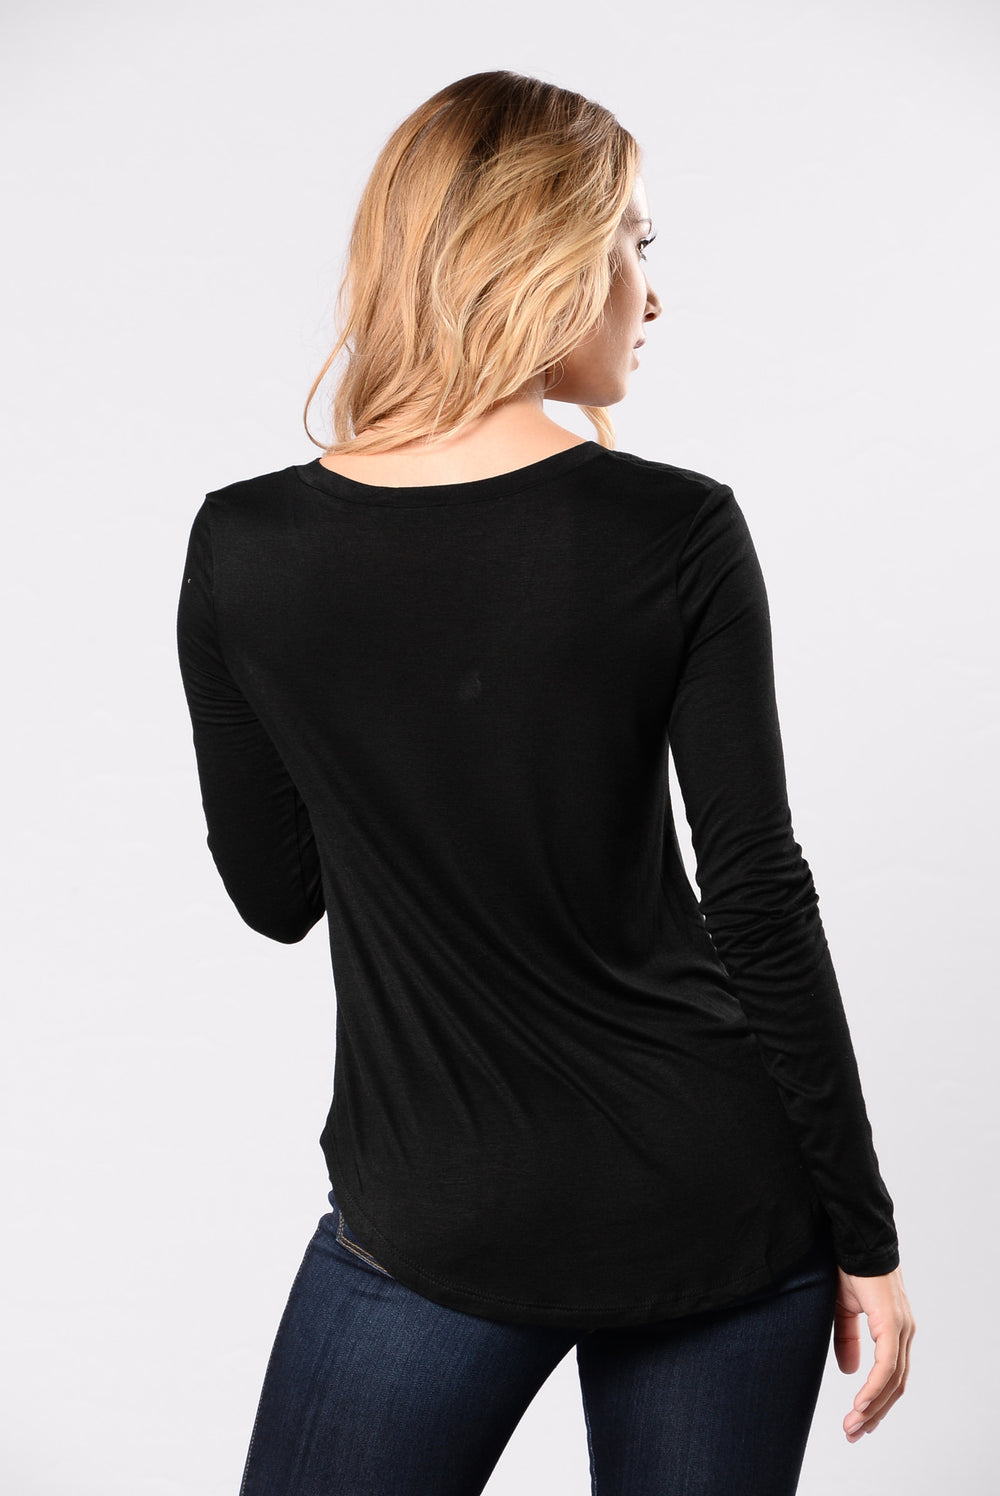 What's in Your Pocket? Top - Black